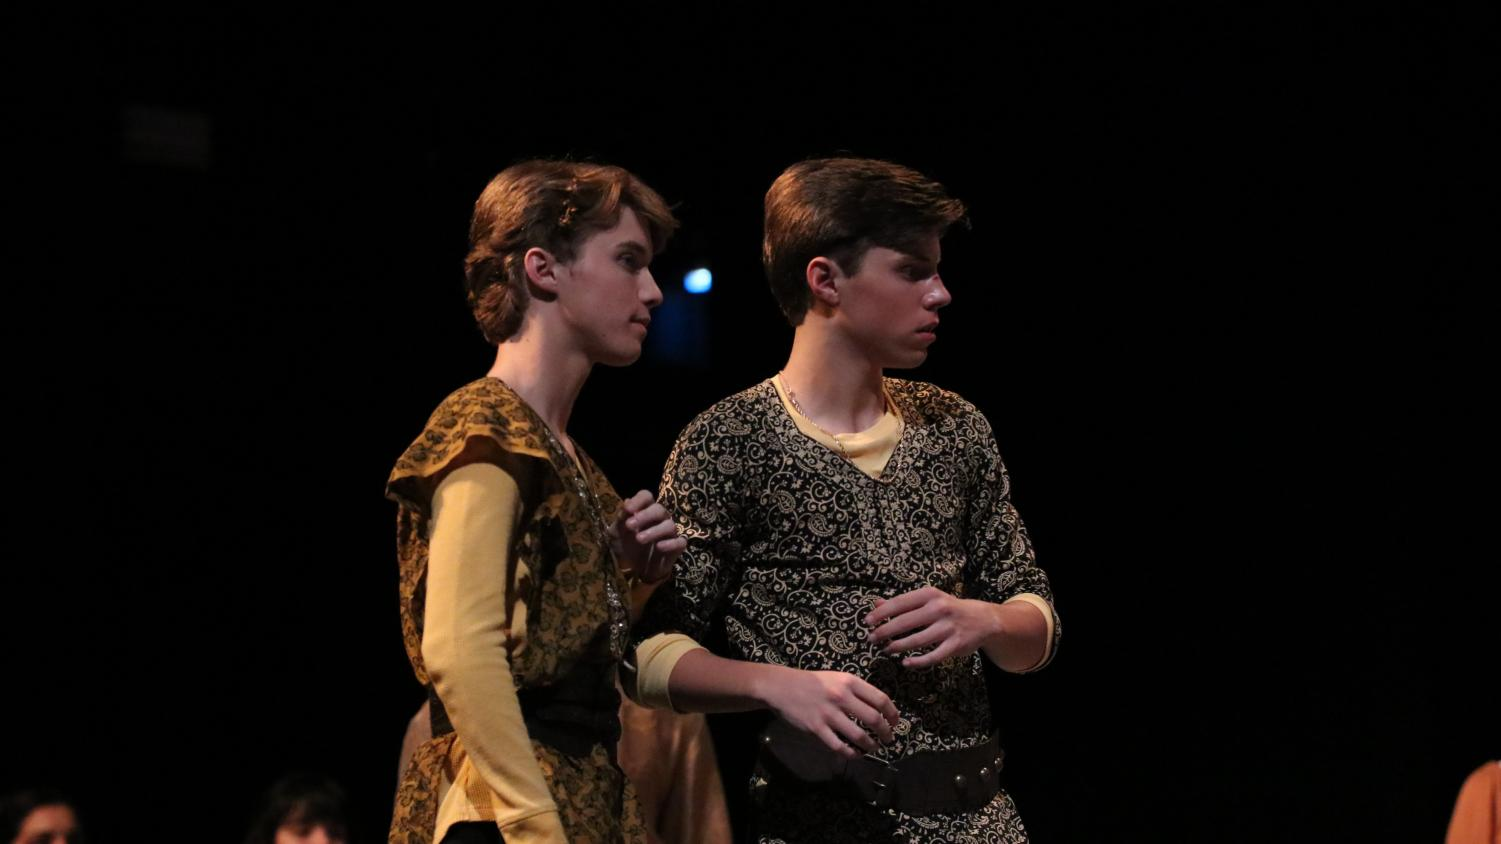 BROTHERS IN ACTION Juniors Will and Sam Ingram play the roles of Antipholus of Syracuse and Ephesus in theatre's fall show, Comedy of Errors